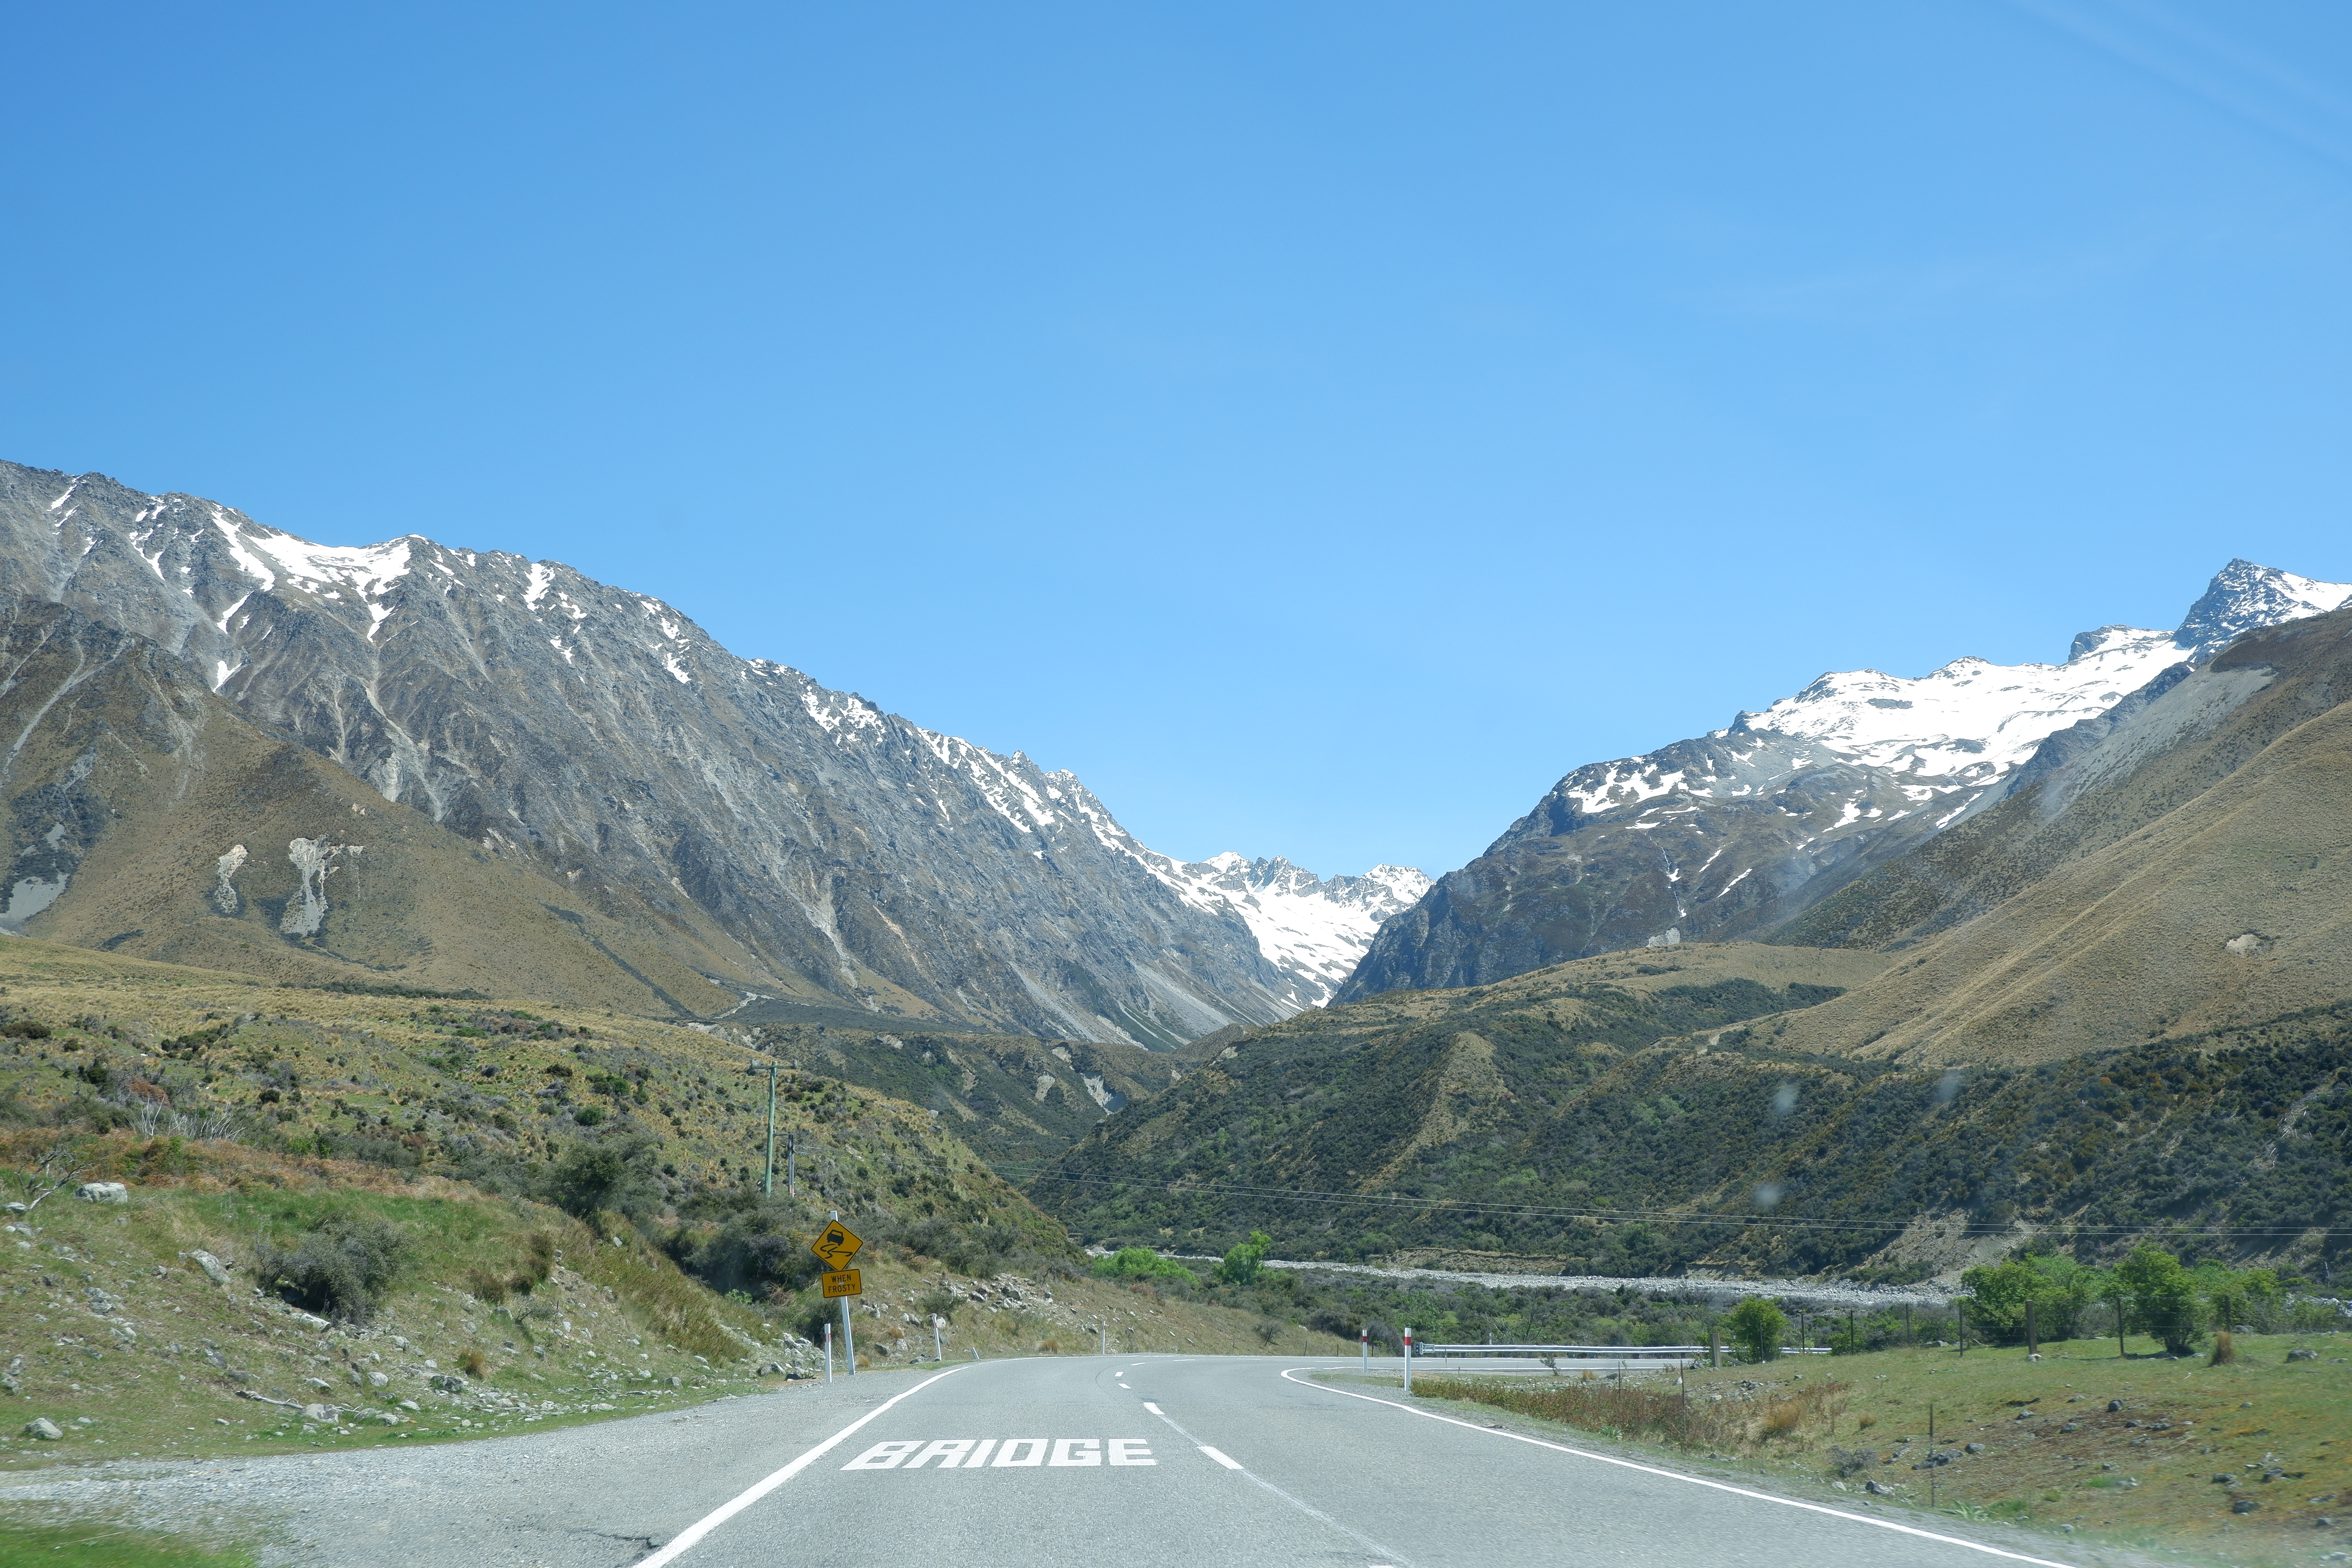 The road to Mount Cook, New Zealand